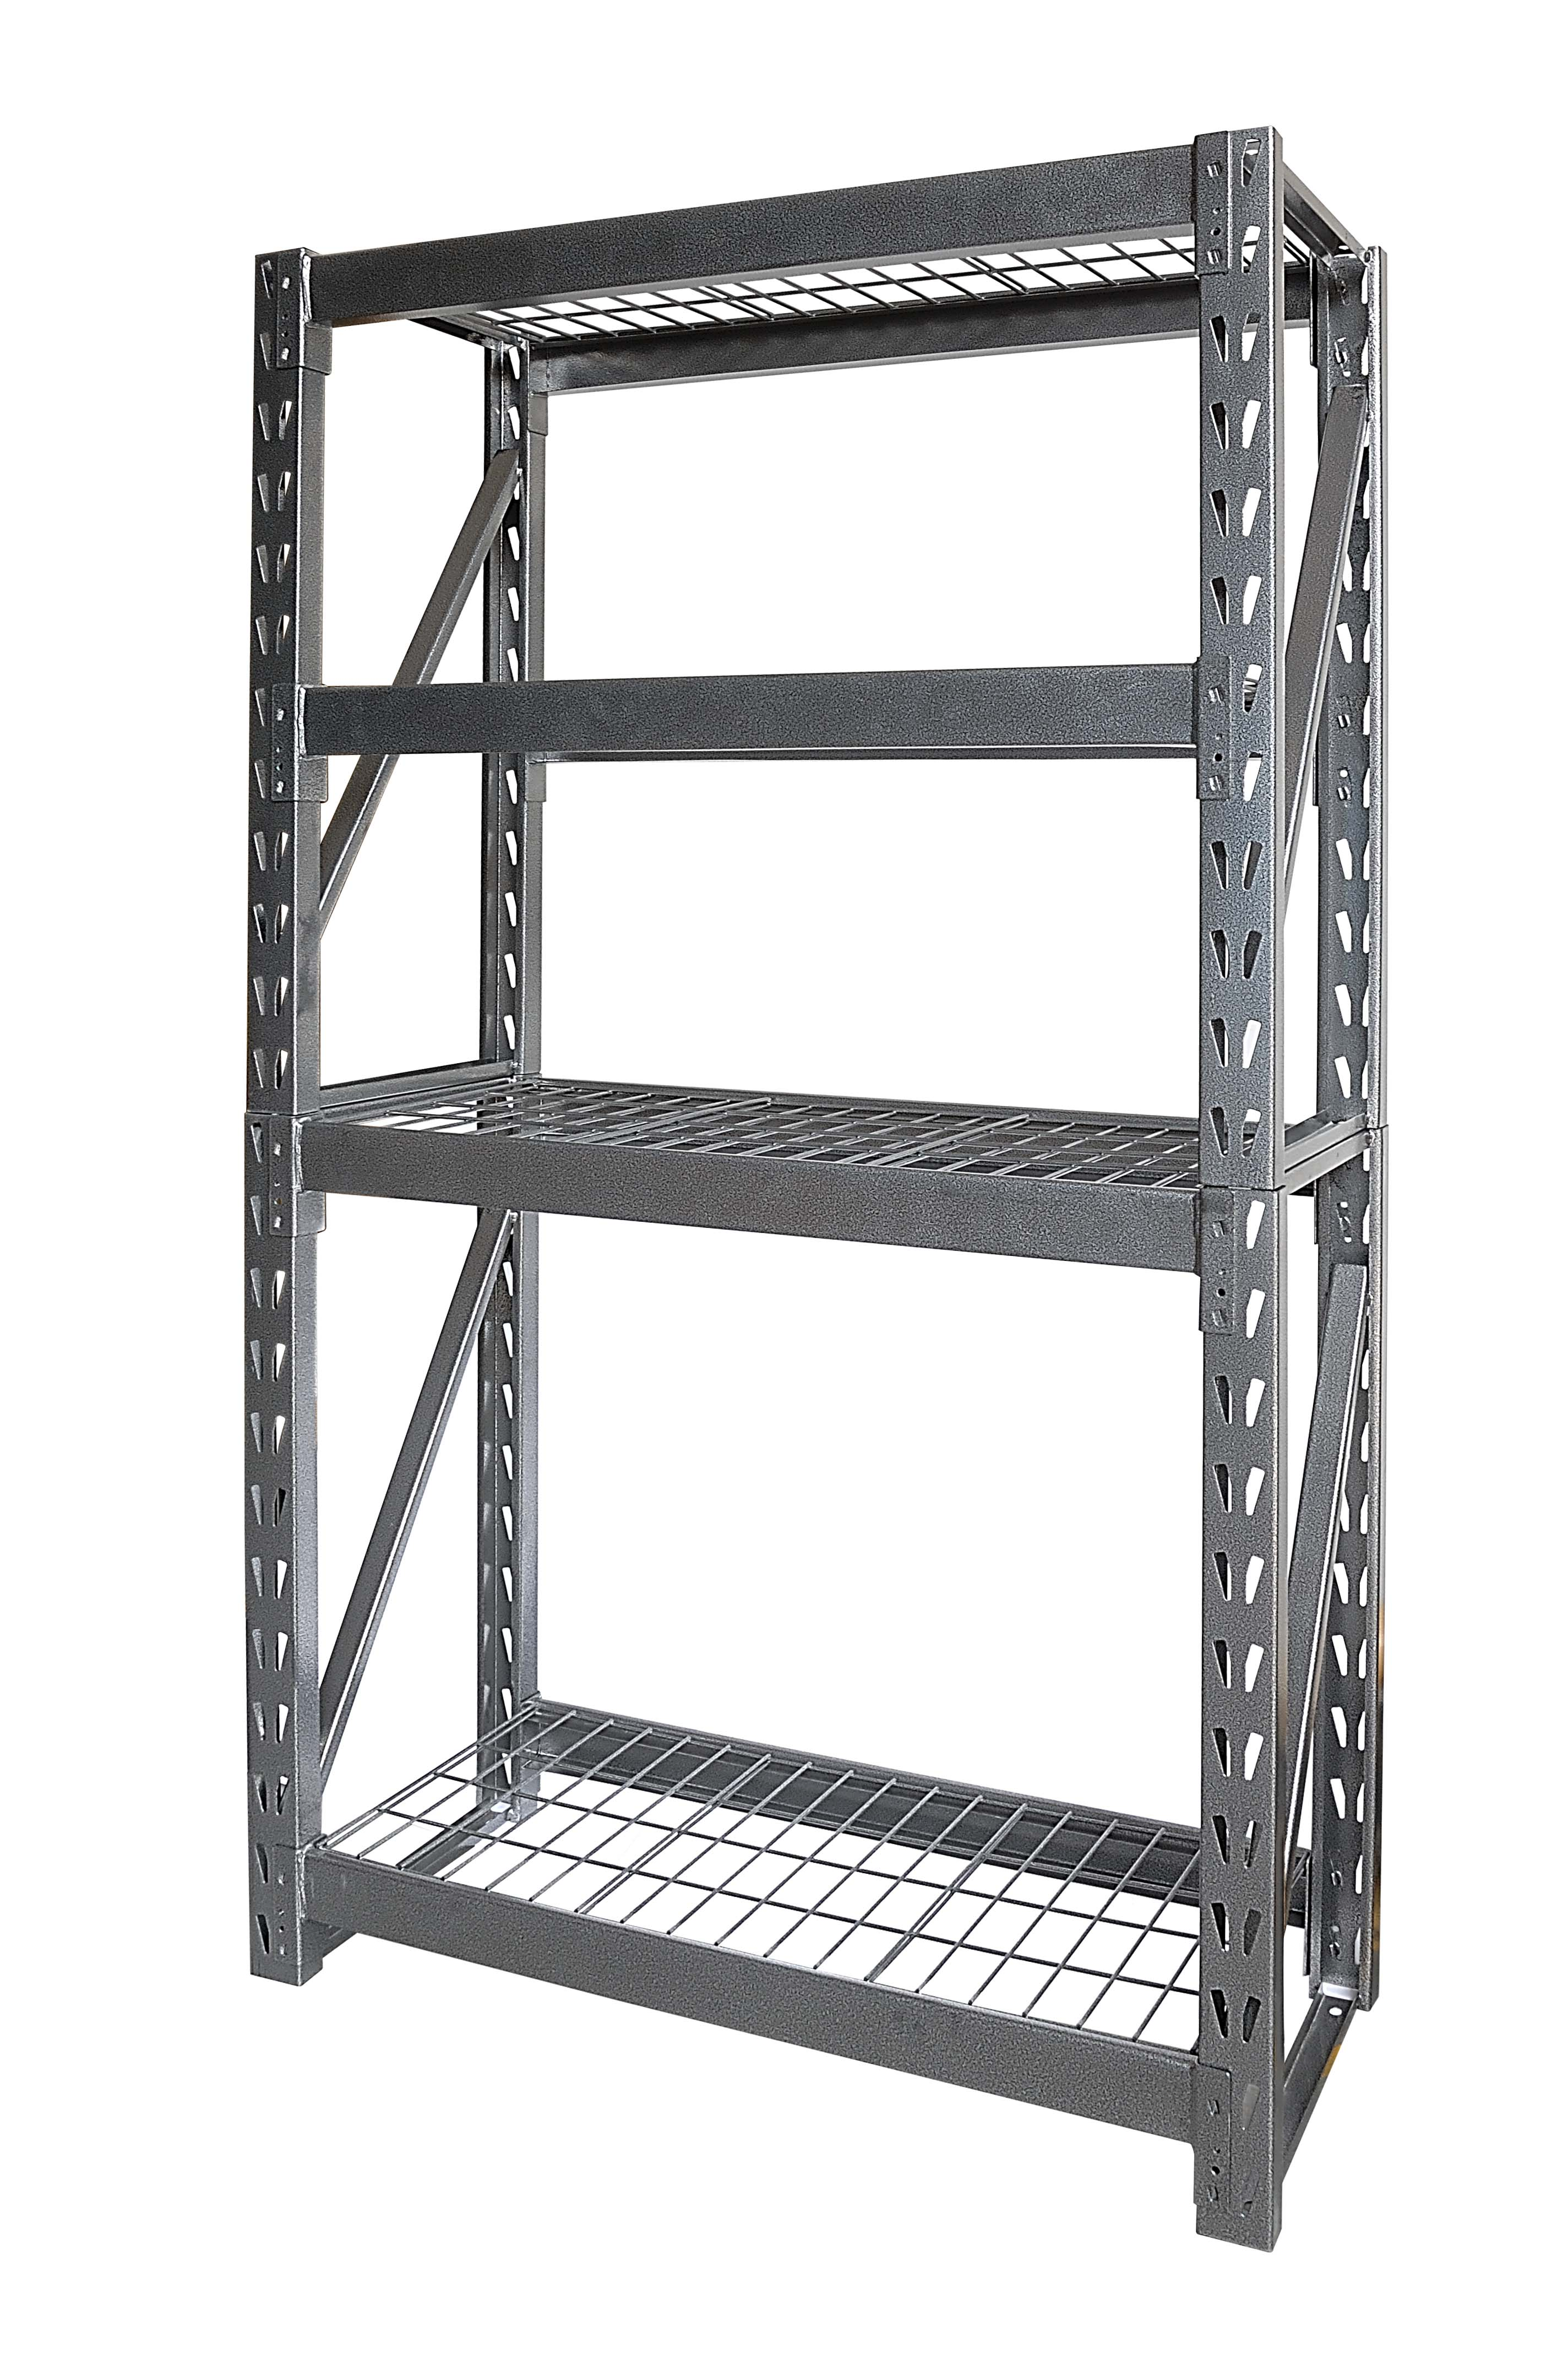 Shop Gorilla - Flexi Rack - 4 Grid Wire Shelves -104 x 43 x 183 cm ...